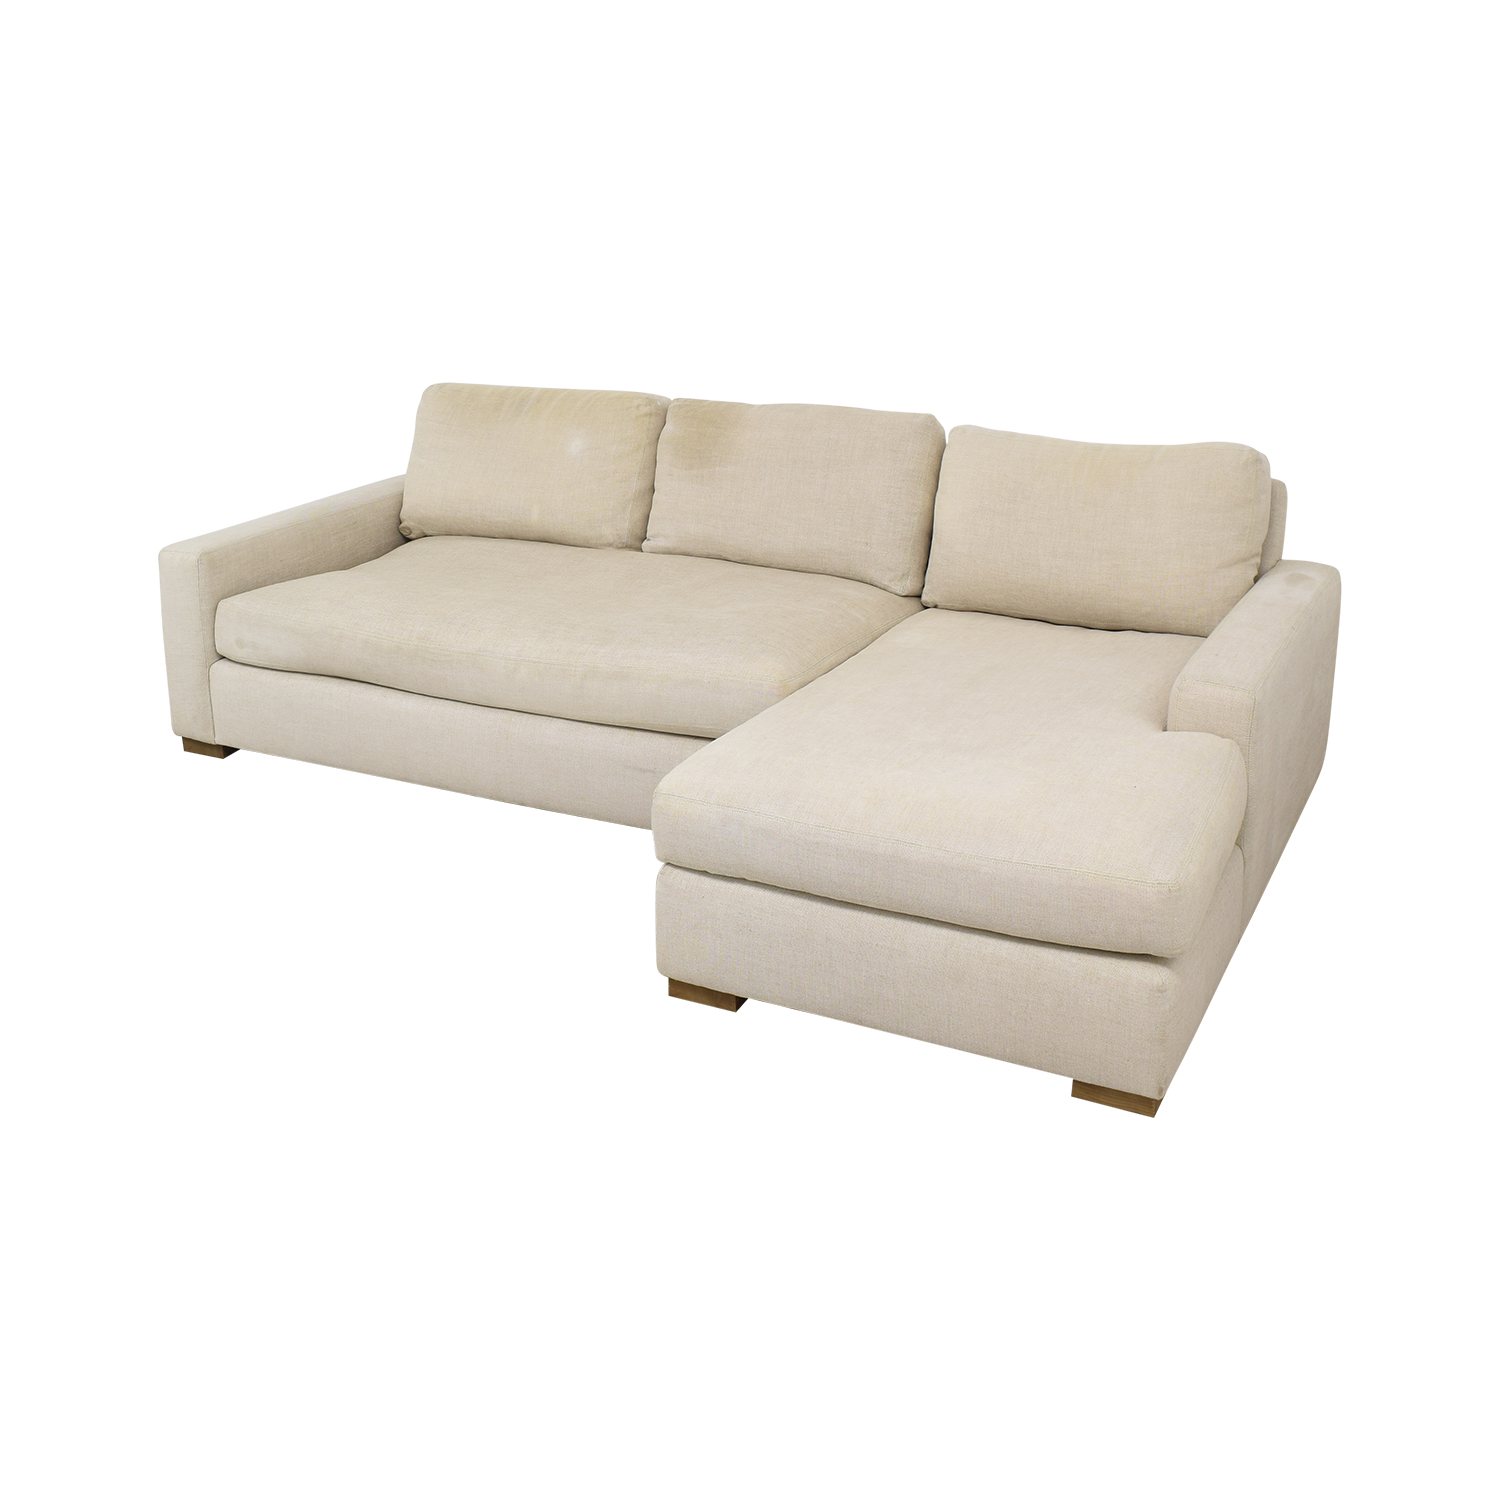 Restoration Hardware Restoration Hardware Maxwell Chaise Sectional Sofa coupon